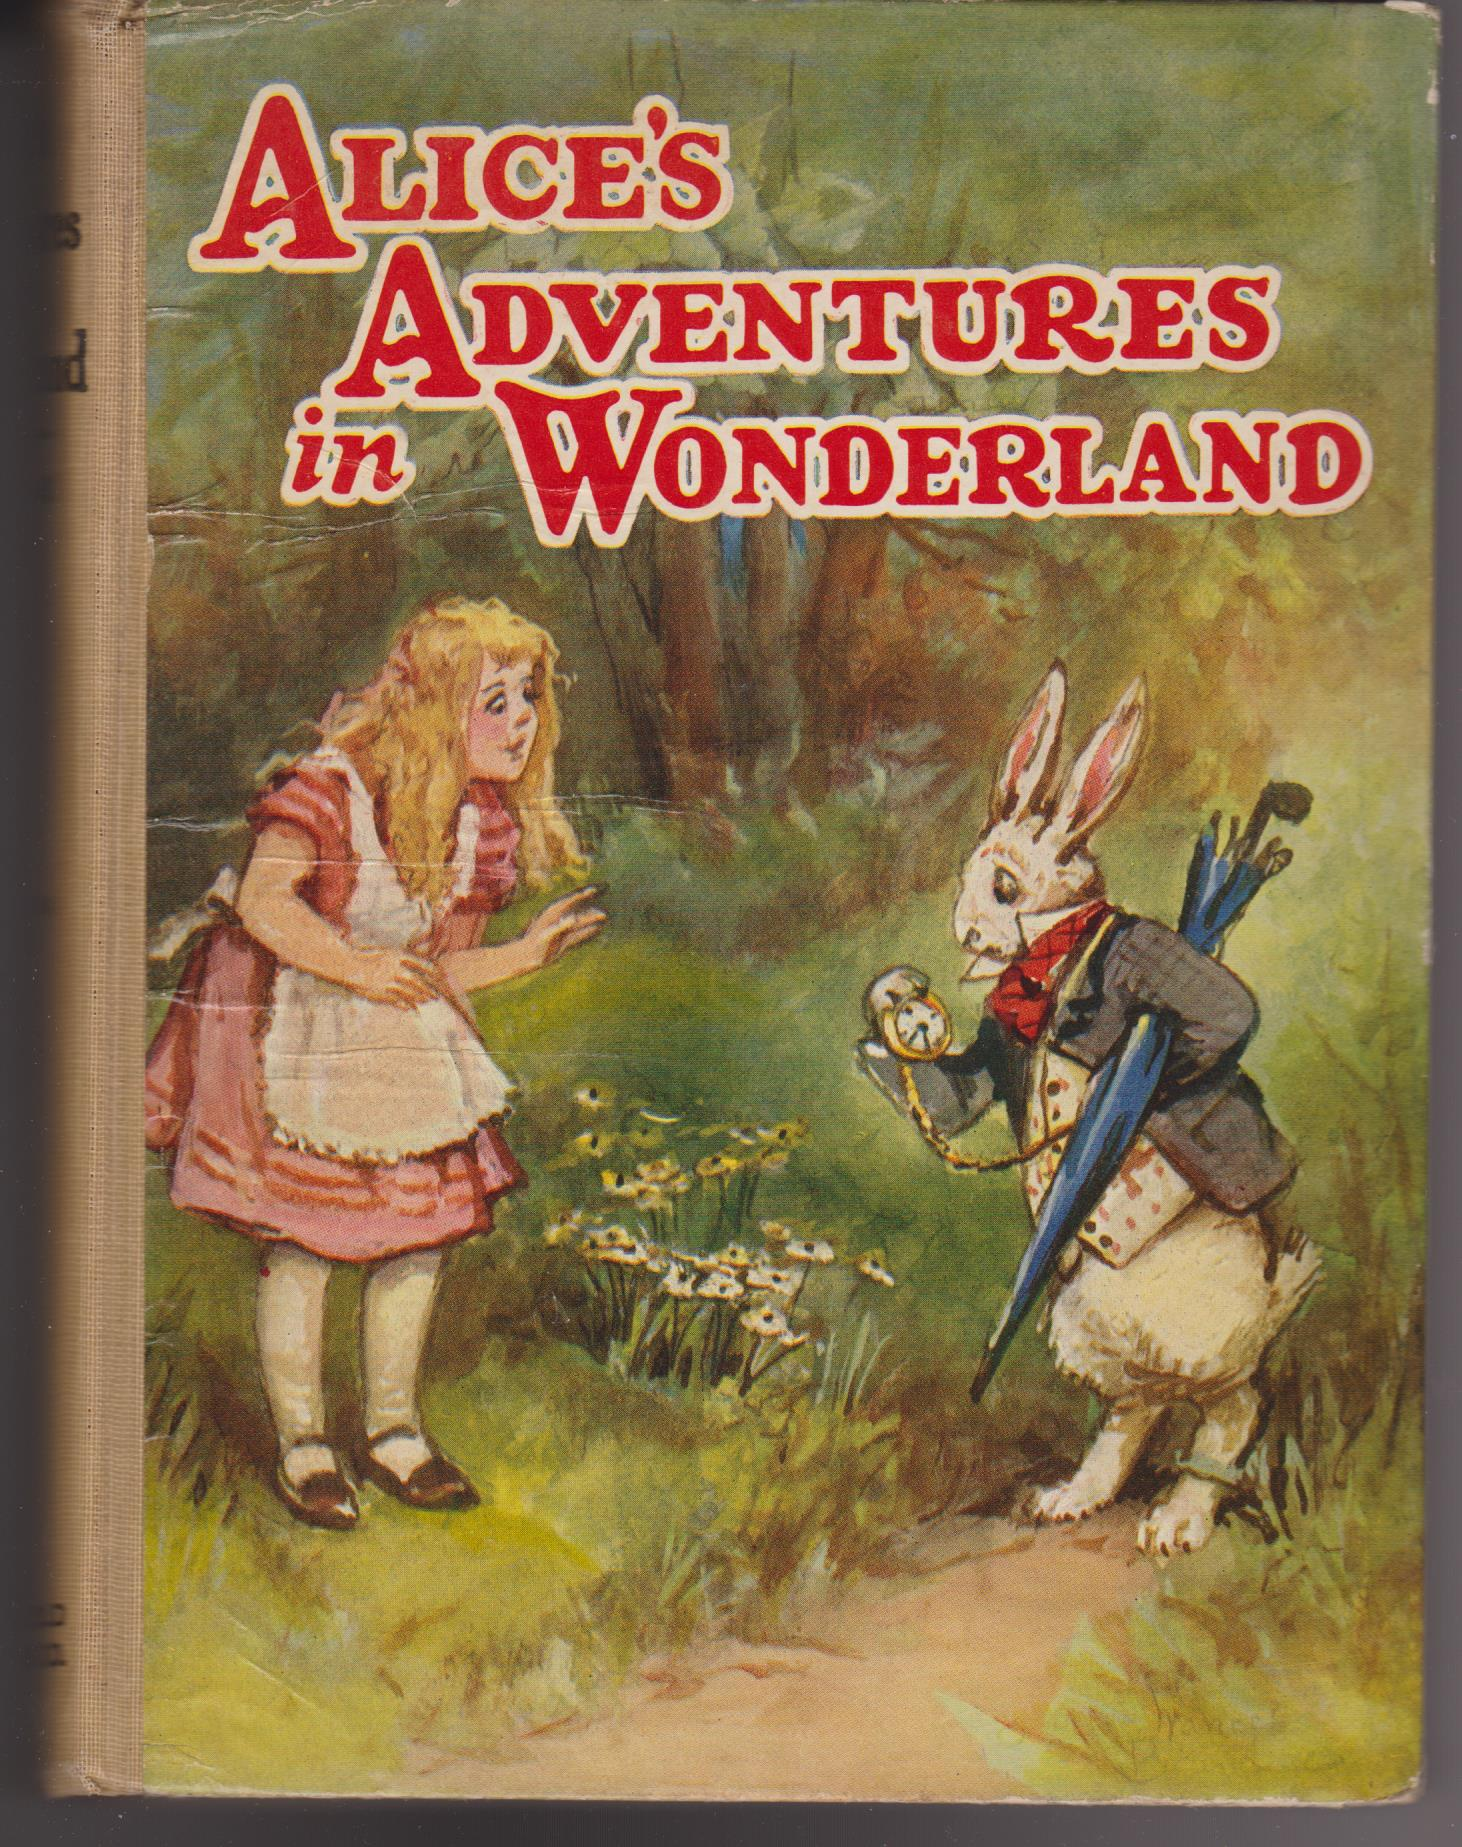 lewis carrolls alice s adventures in wonderland Alice's adventures in wonderland (commonly shortened to alice in wonderland) is an 1865 novel written by english author charles lutwidge dodgson under the pseudonym.